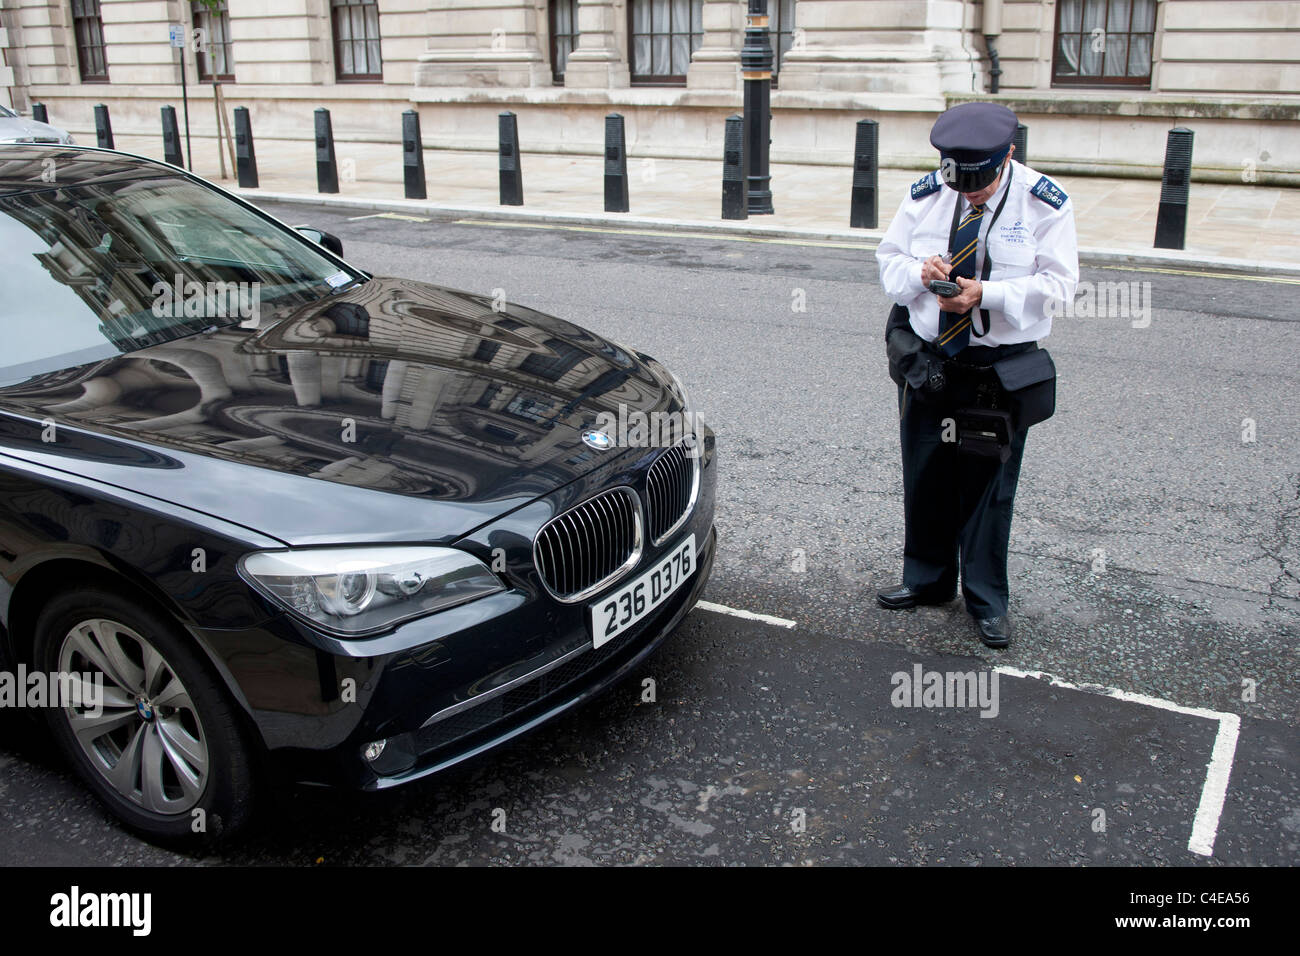 London Traffic warden giving illegally parked BMW a parking ticket. Westminster, London - Stock Image